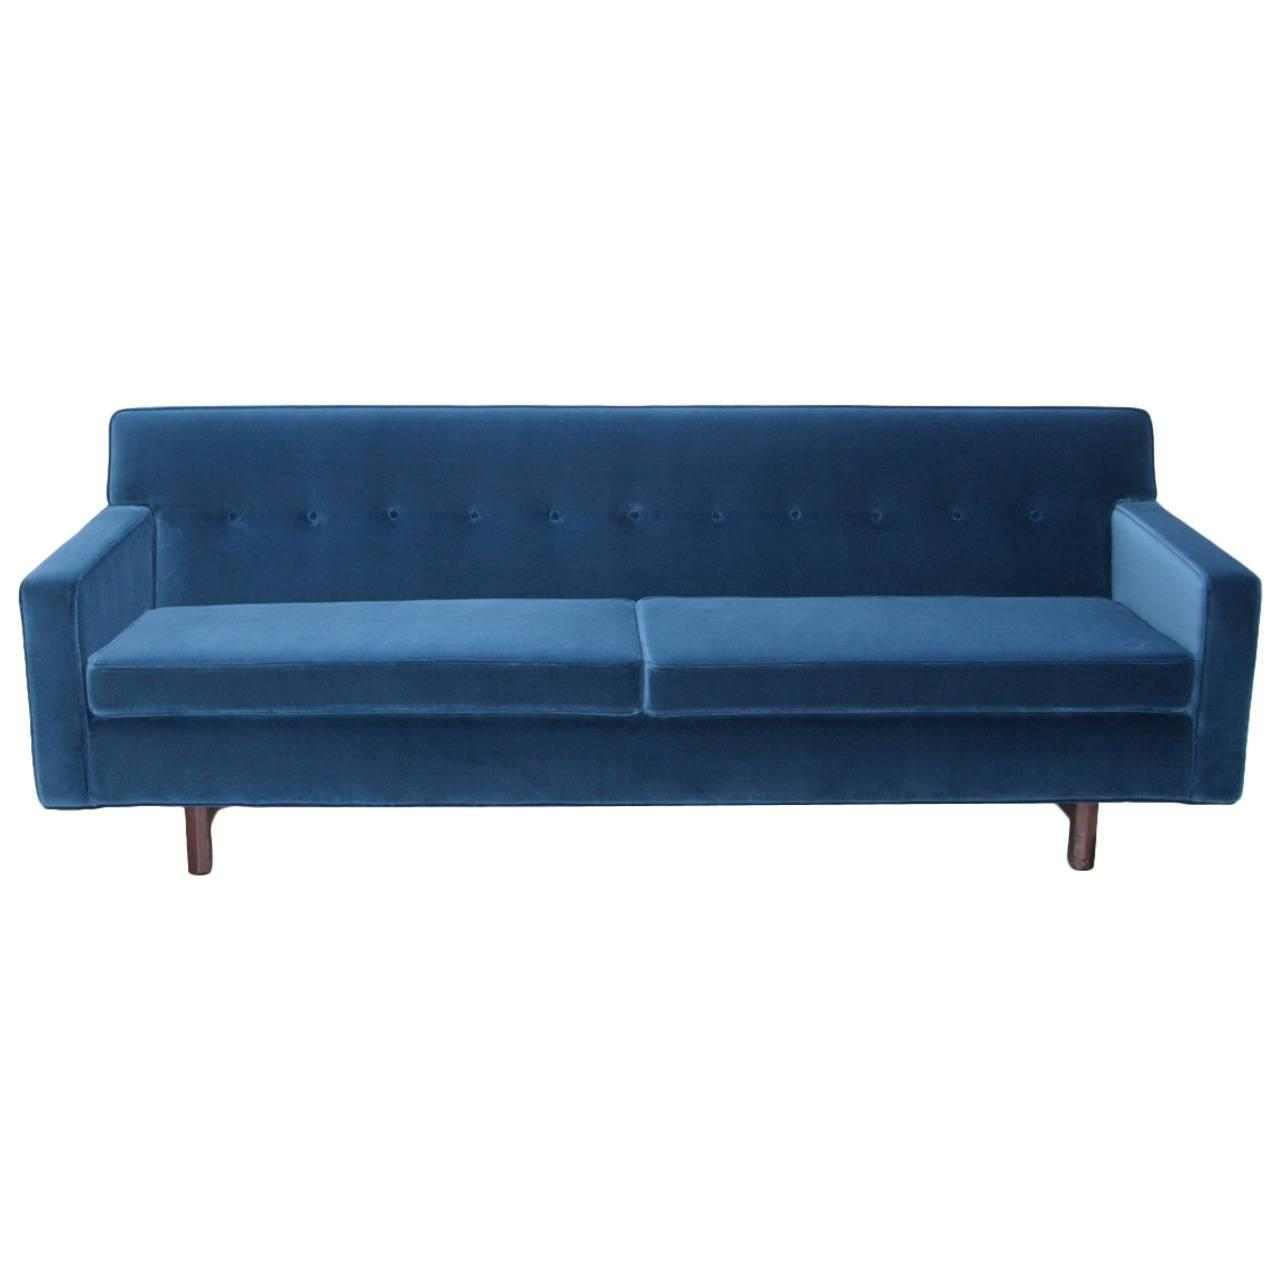 New Upholstered Edward Wormley Sofa In Indigo Dedar Fabric For Dunbar For Sale At 1stdibs